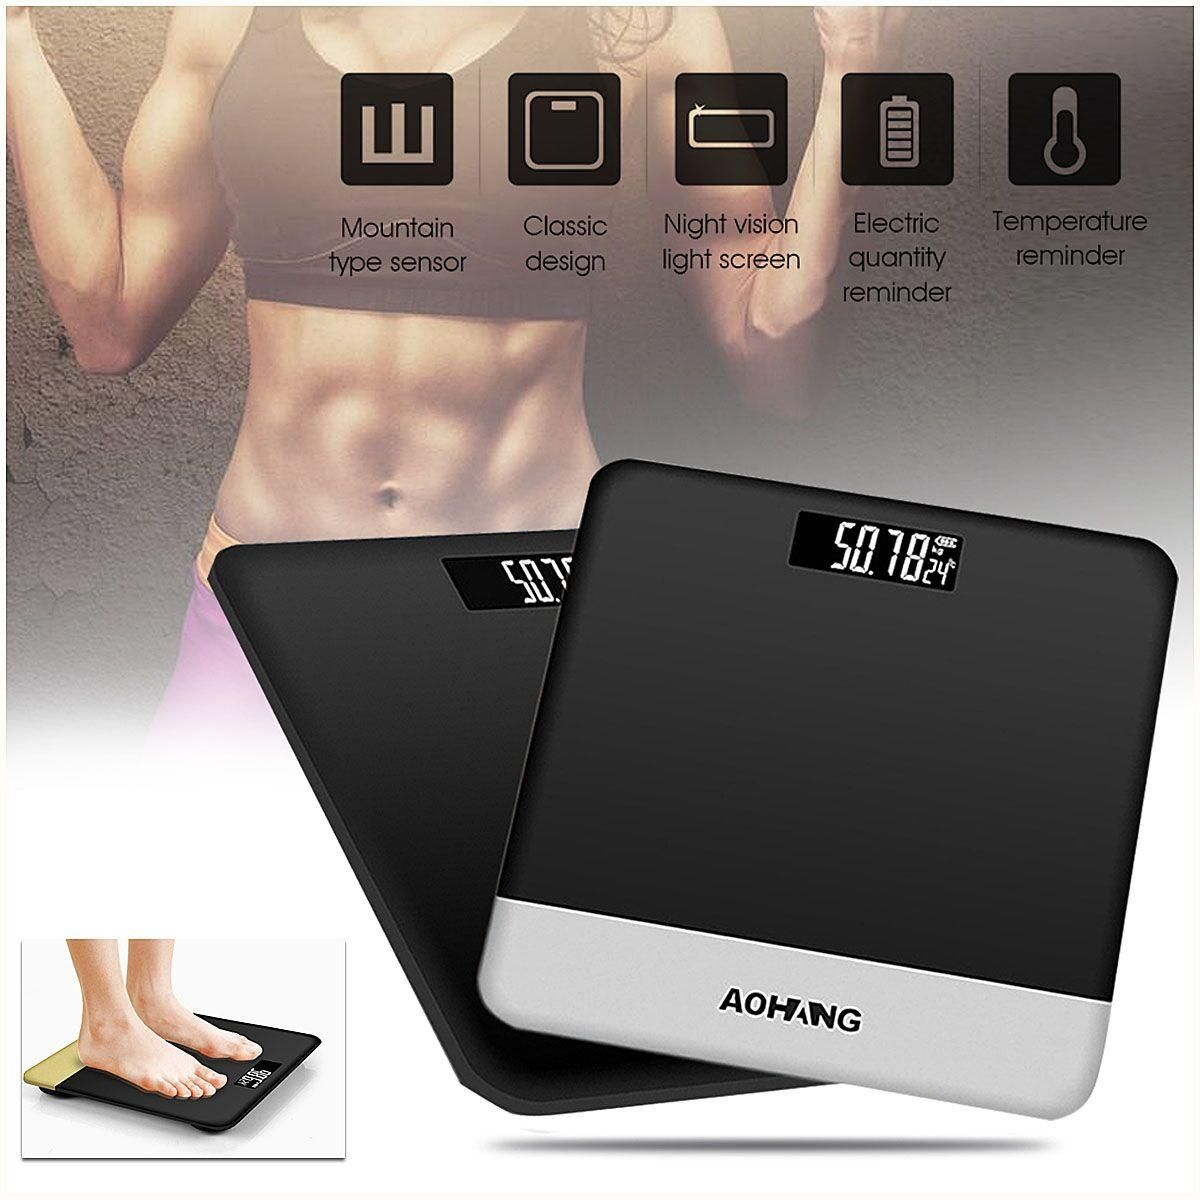 YFP US$26.99 Holmark Electronic LCD Digitial Body Weight Scale Fitness Fat Healty Beauty